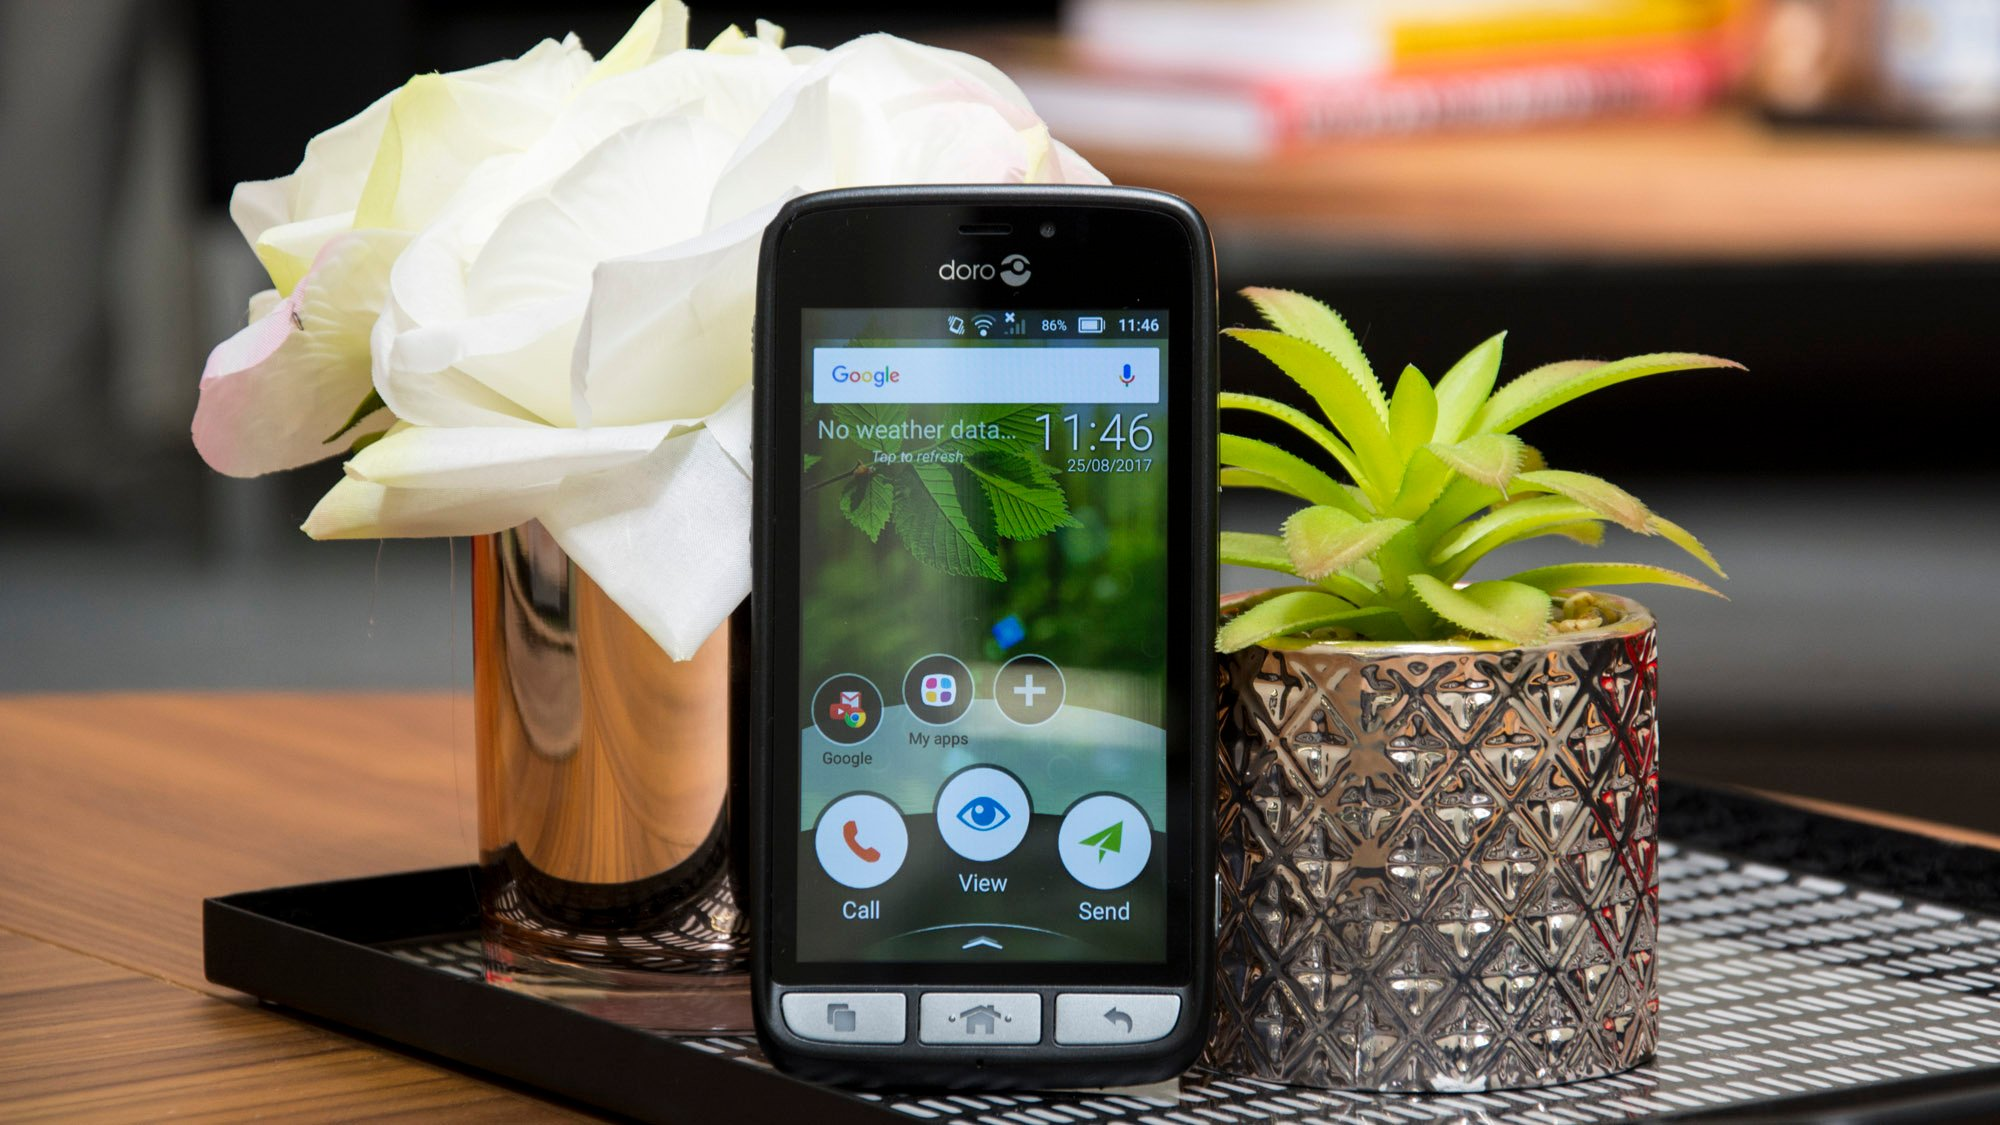 Doro 8030 review: The perfect phone for the older generation